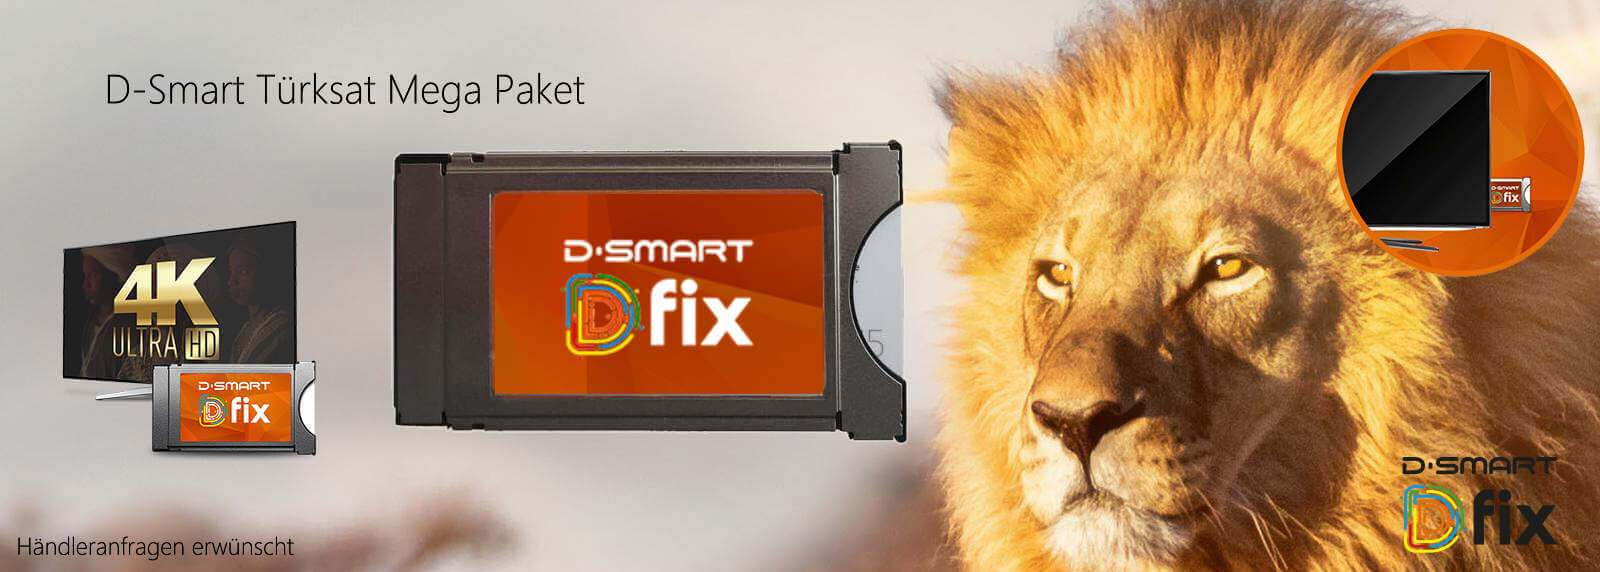 D-Smart D-Fix Türksat Mega Paket